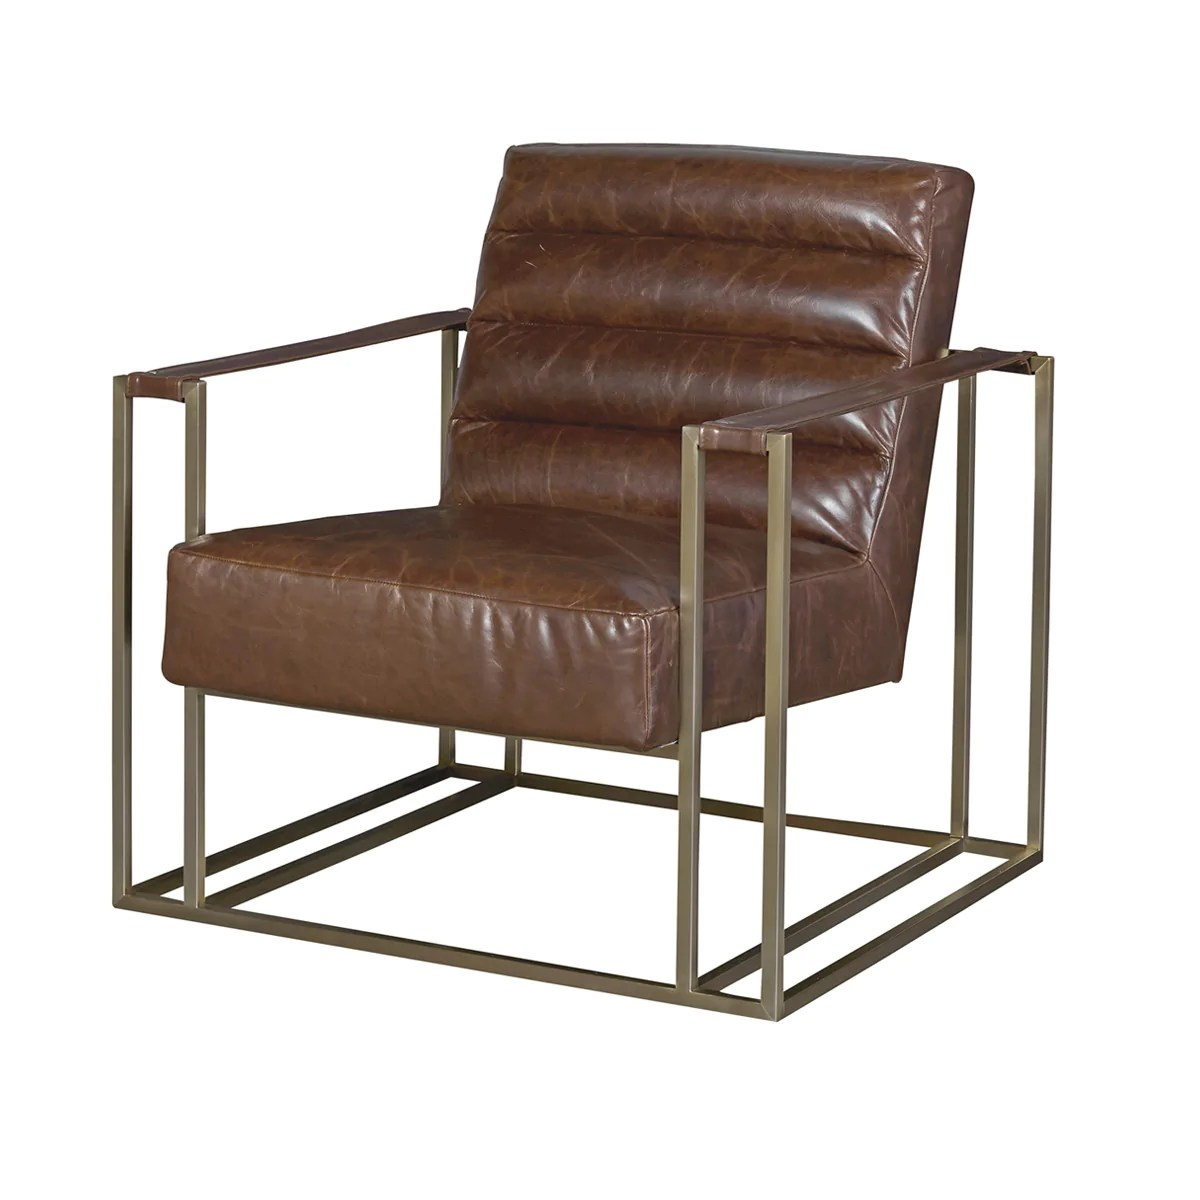 tan leather dining chairs melbourne orthopedic high seat chair for the elderly or infirm boyd occasional